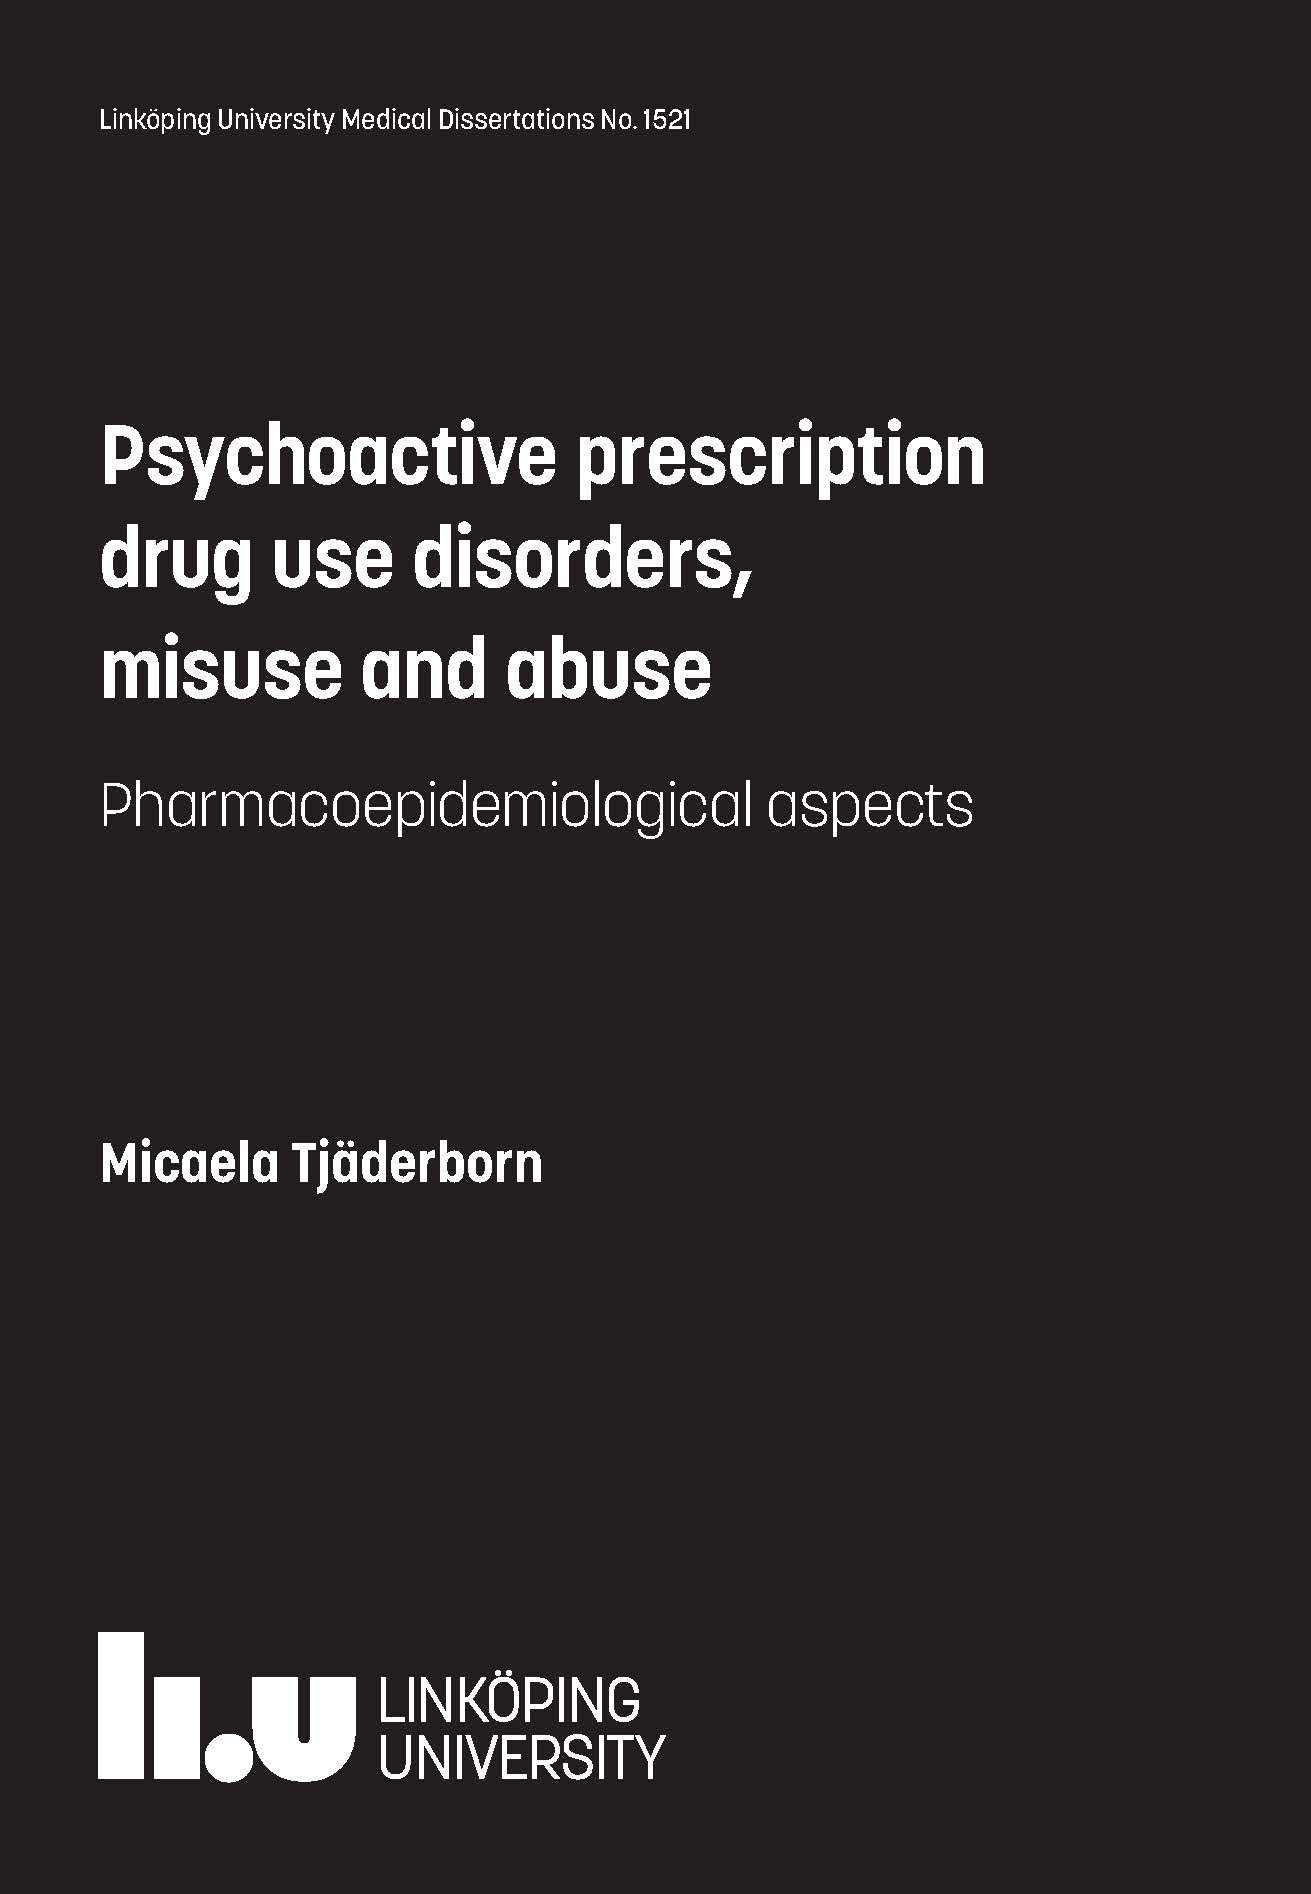 psychoactive prescription drug use disorders misuse and abuse  psychoactive prescription drug use disorders misuse and abuse pharmacoepidemiological aspects